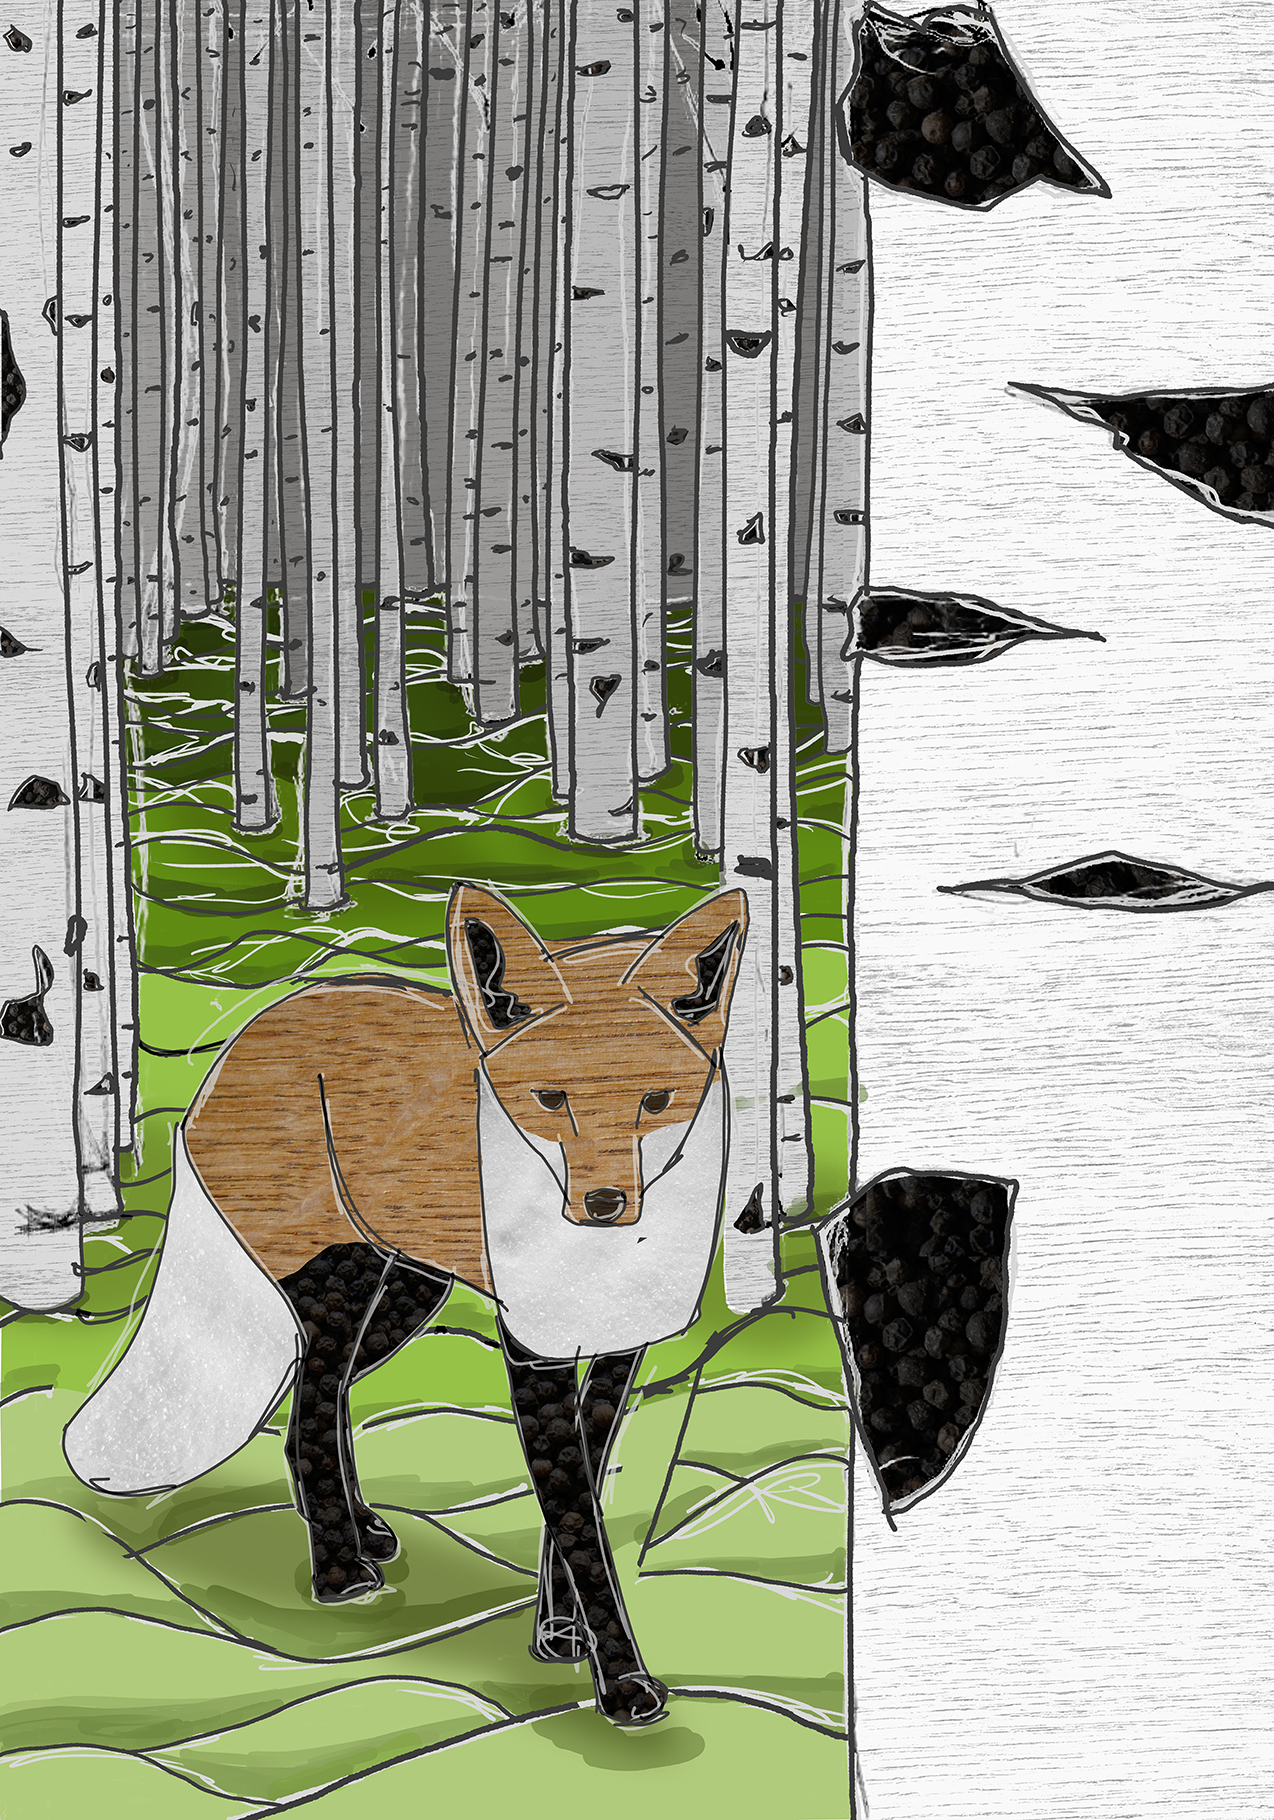 Fuchs im Birkenwald, Digital Painting/Collage